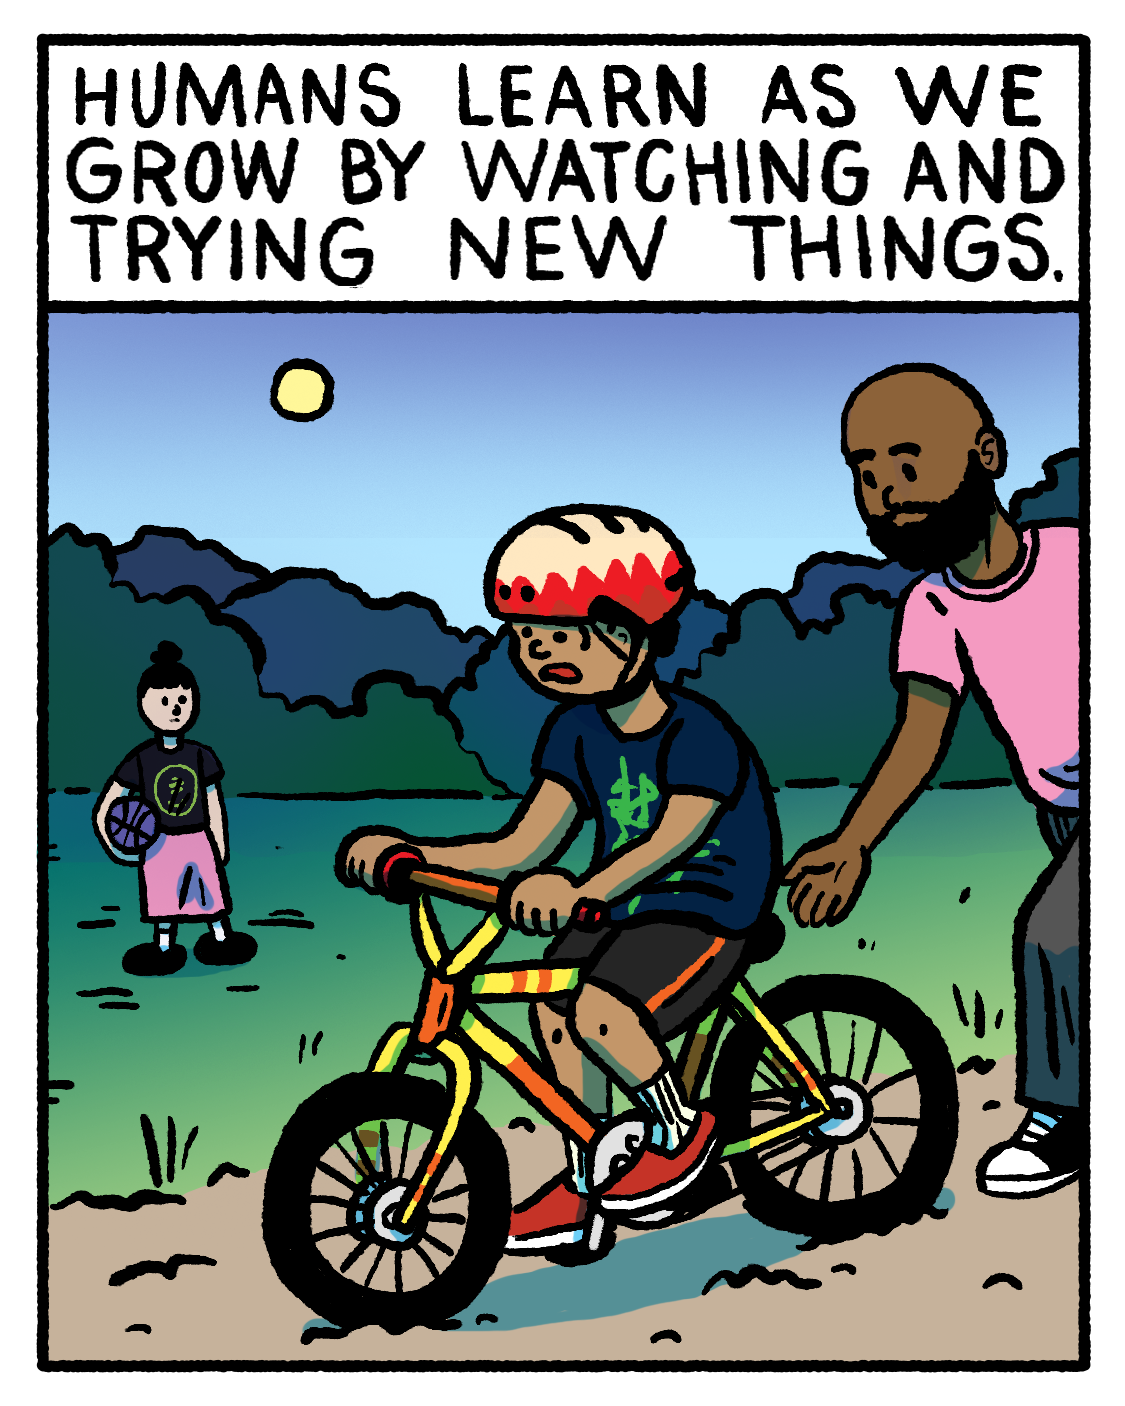 Humans learn and grow by learning and watching new things. Pictured: An illustration of a child learning how to ride a bicycle with adult supervision.